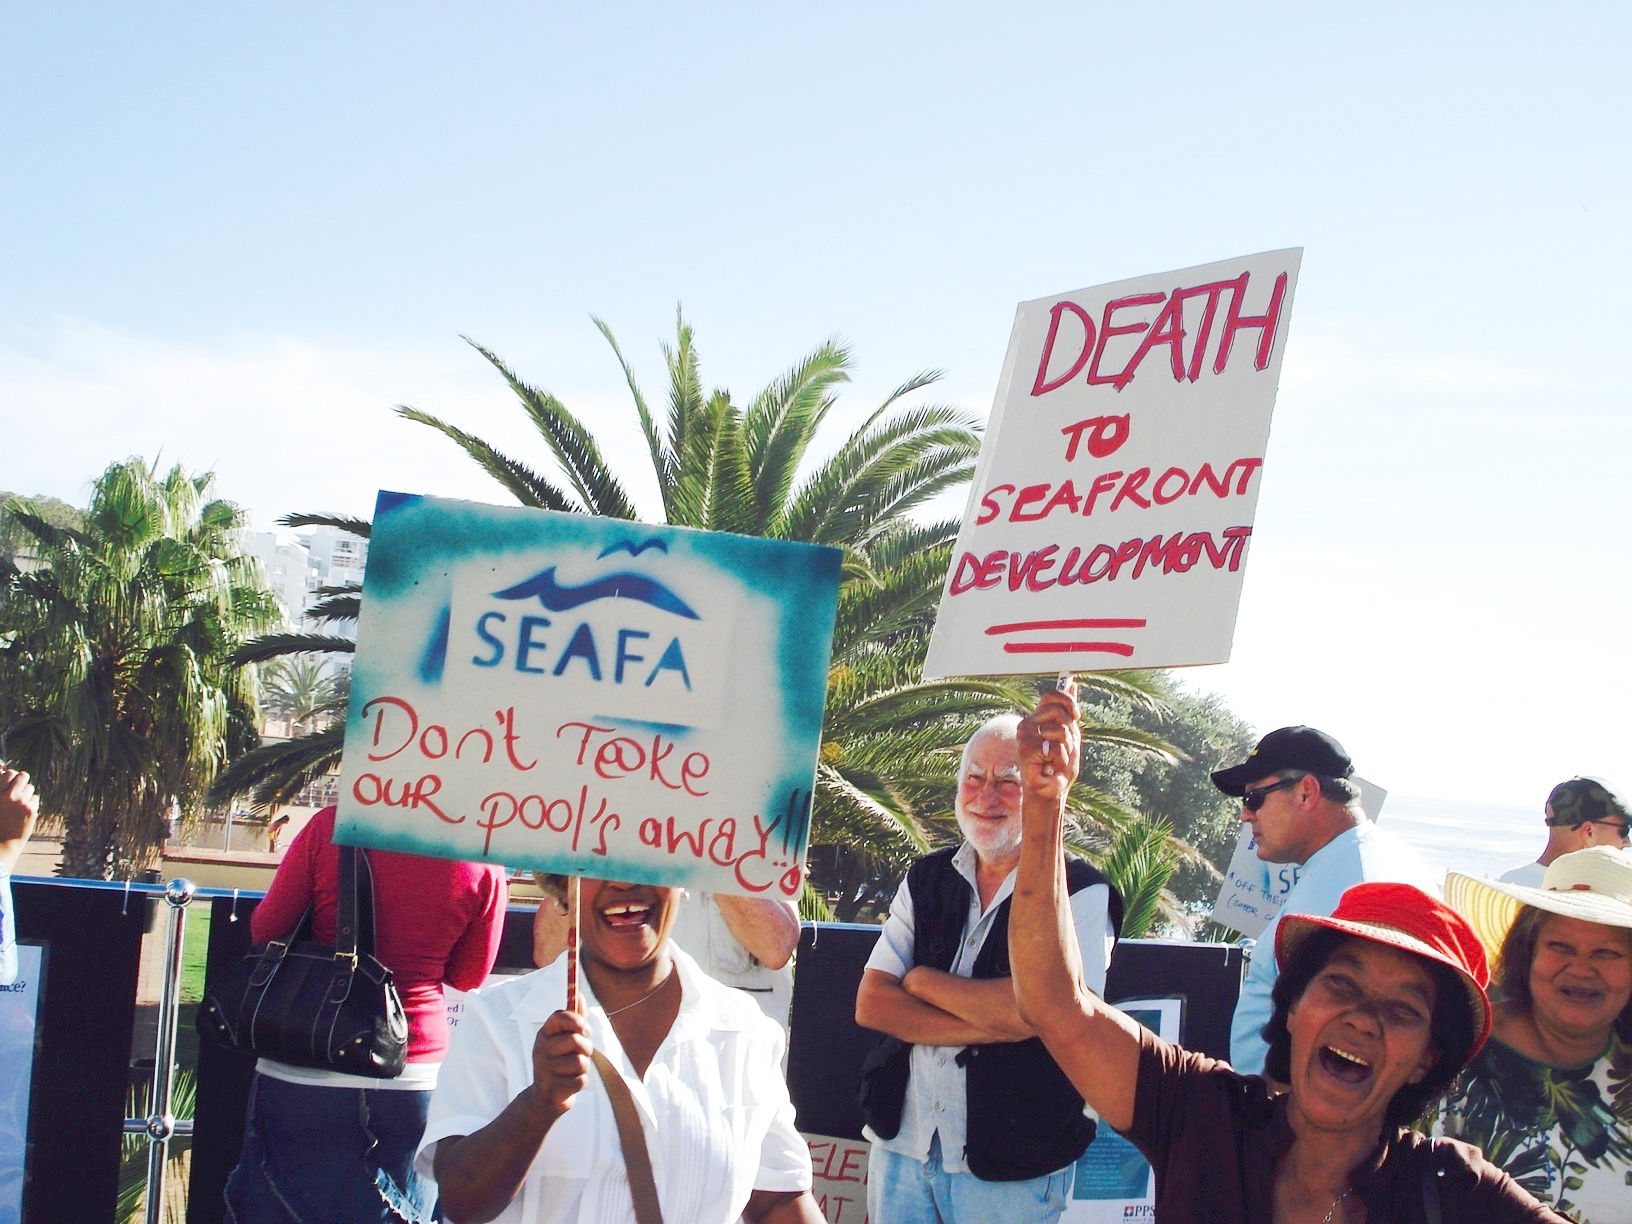 Citizens in Cape Town coming together to successfully protest planned developments of the Sea Point Promenade. The more recent  Reclaim the City  campaign continues the tradition, focussing on social housing.